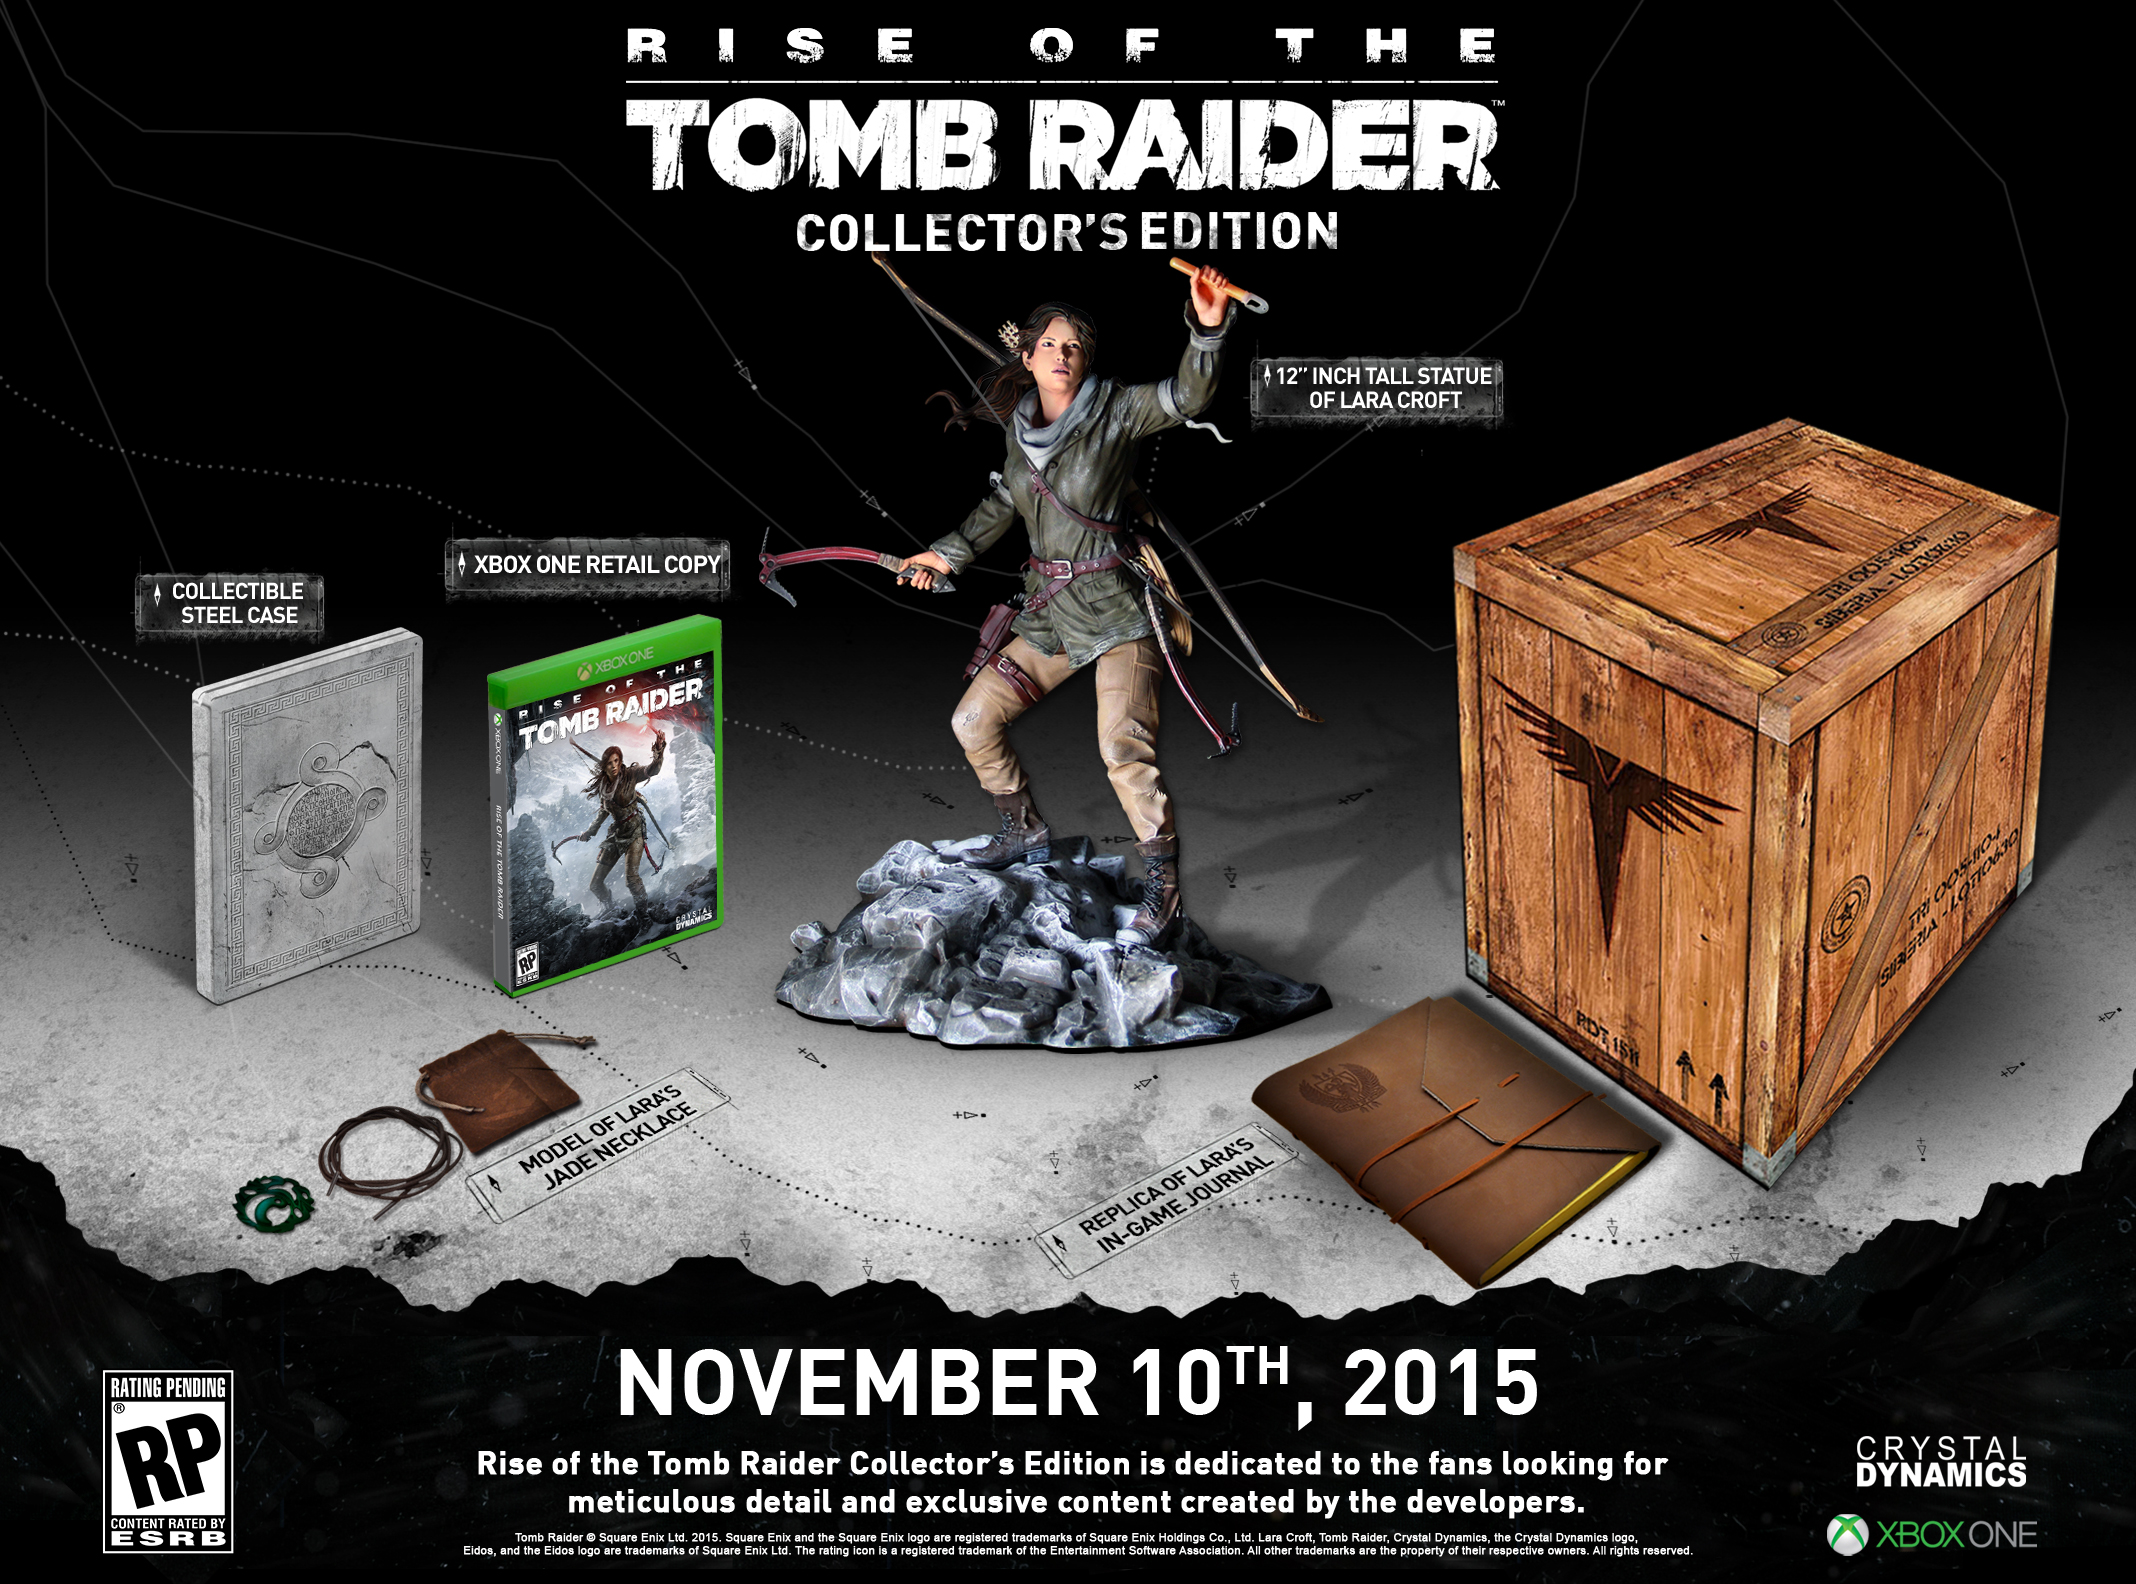 Rise Of The Tomb Raider Collectors Edition Features Lara Croft Sony Ps4 No Word Yet If This Will Also Be Available For Pc And Playstation 4 Versions